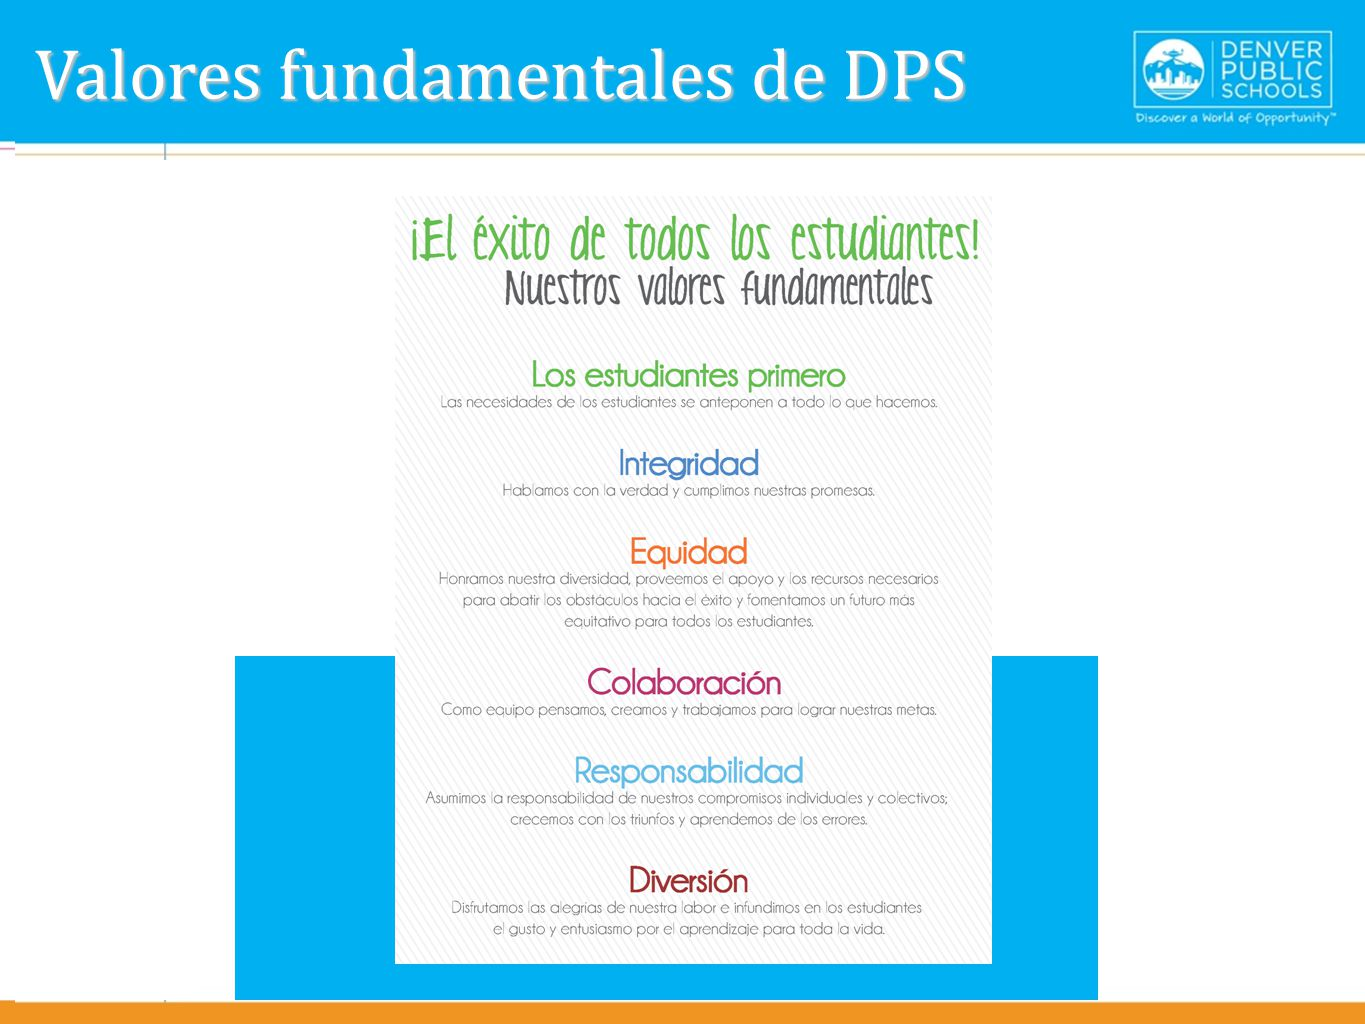 Valores fundamentales de DPS